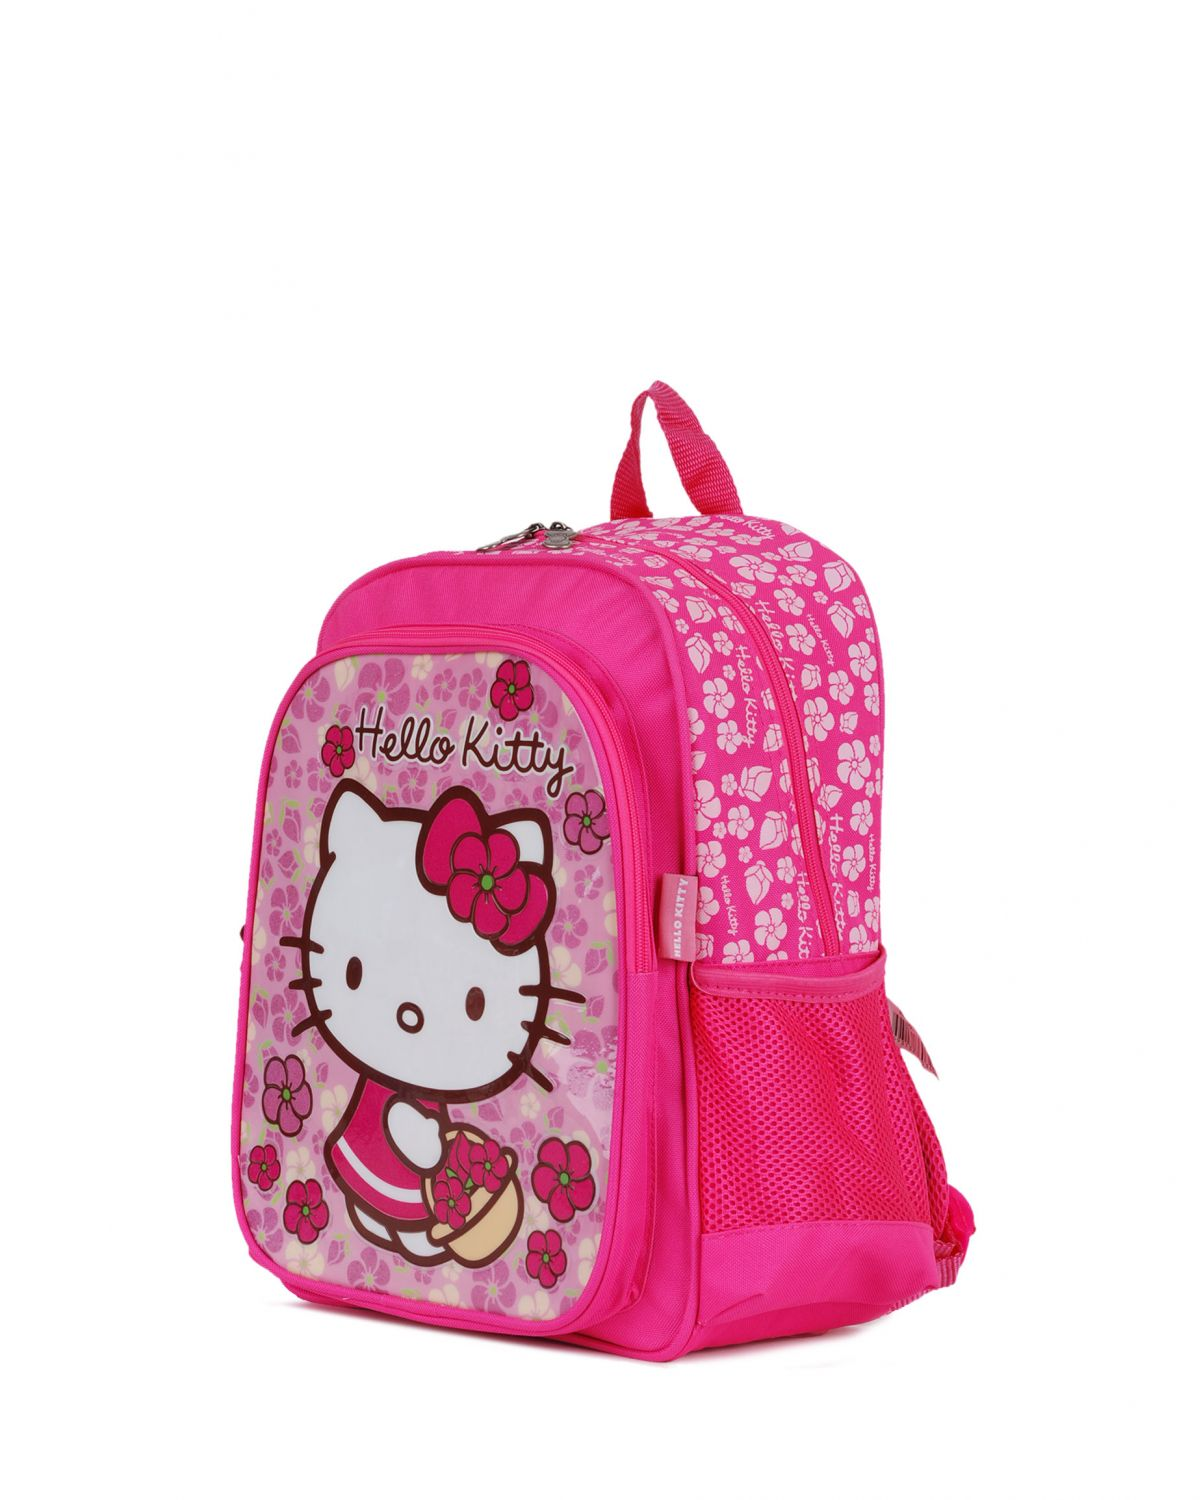 Hello Kitty Flower İlkokulu Çantası 86034 Pembe